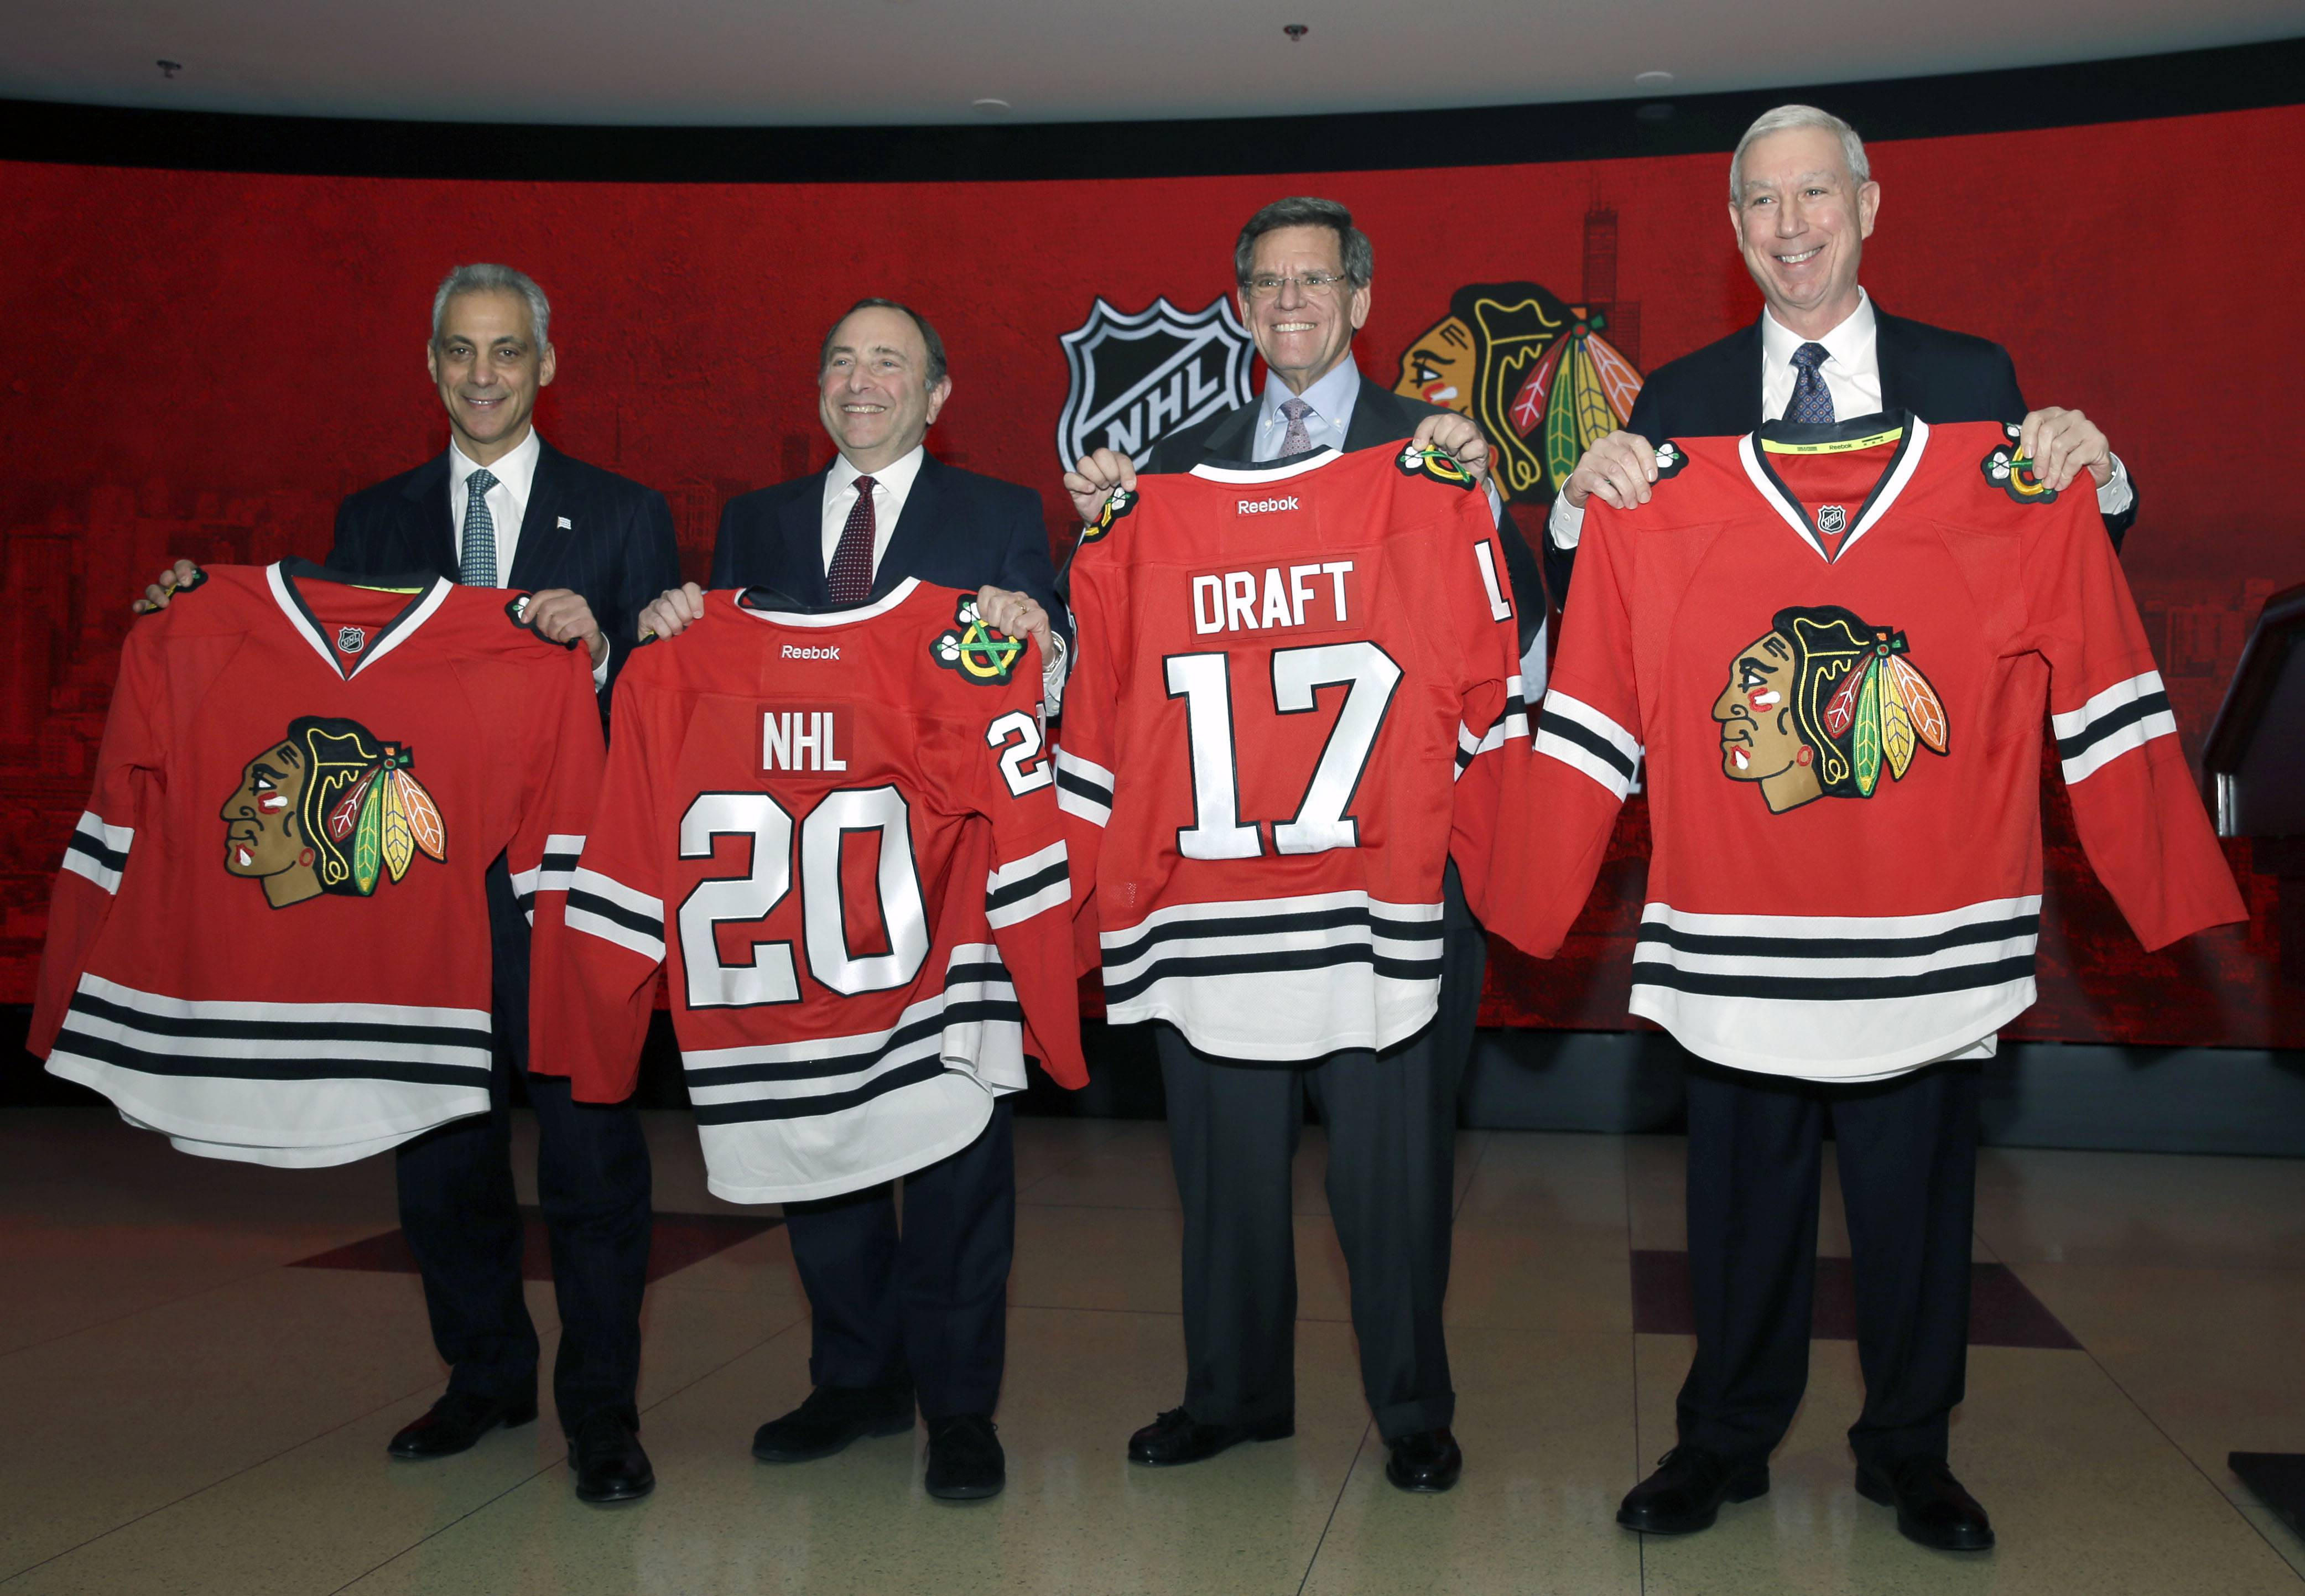 The 2015 NHL Draft was held in Florida, and the 2016 event will be in Buffalo in June. Chicago, according to published reports, will host the 2017 NHL Draft.